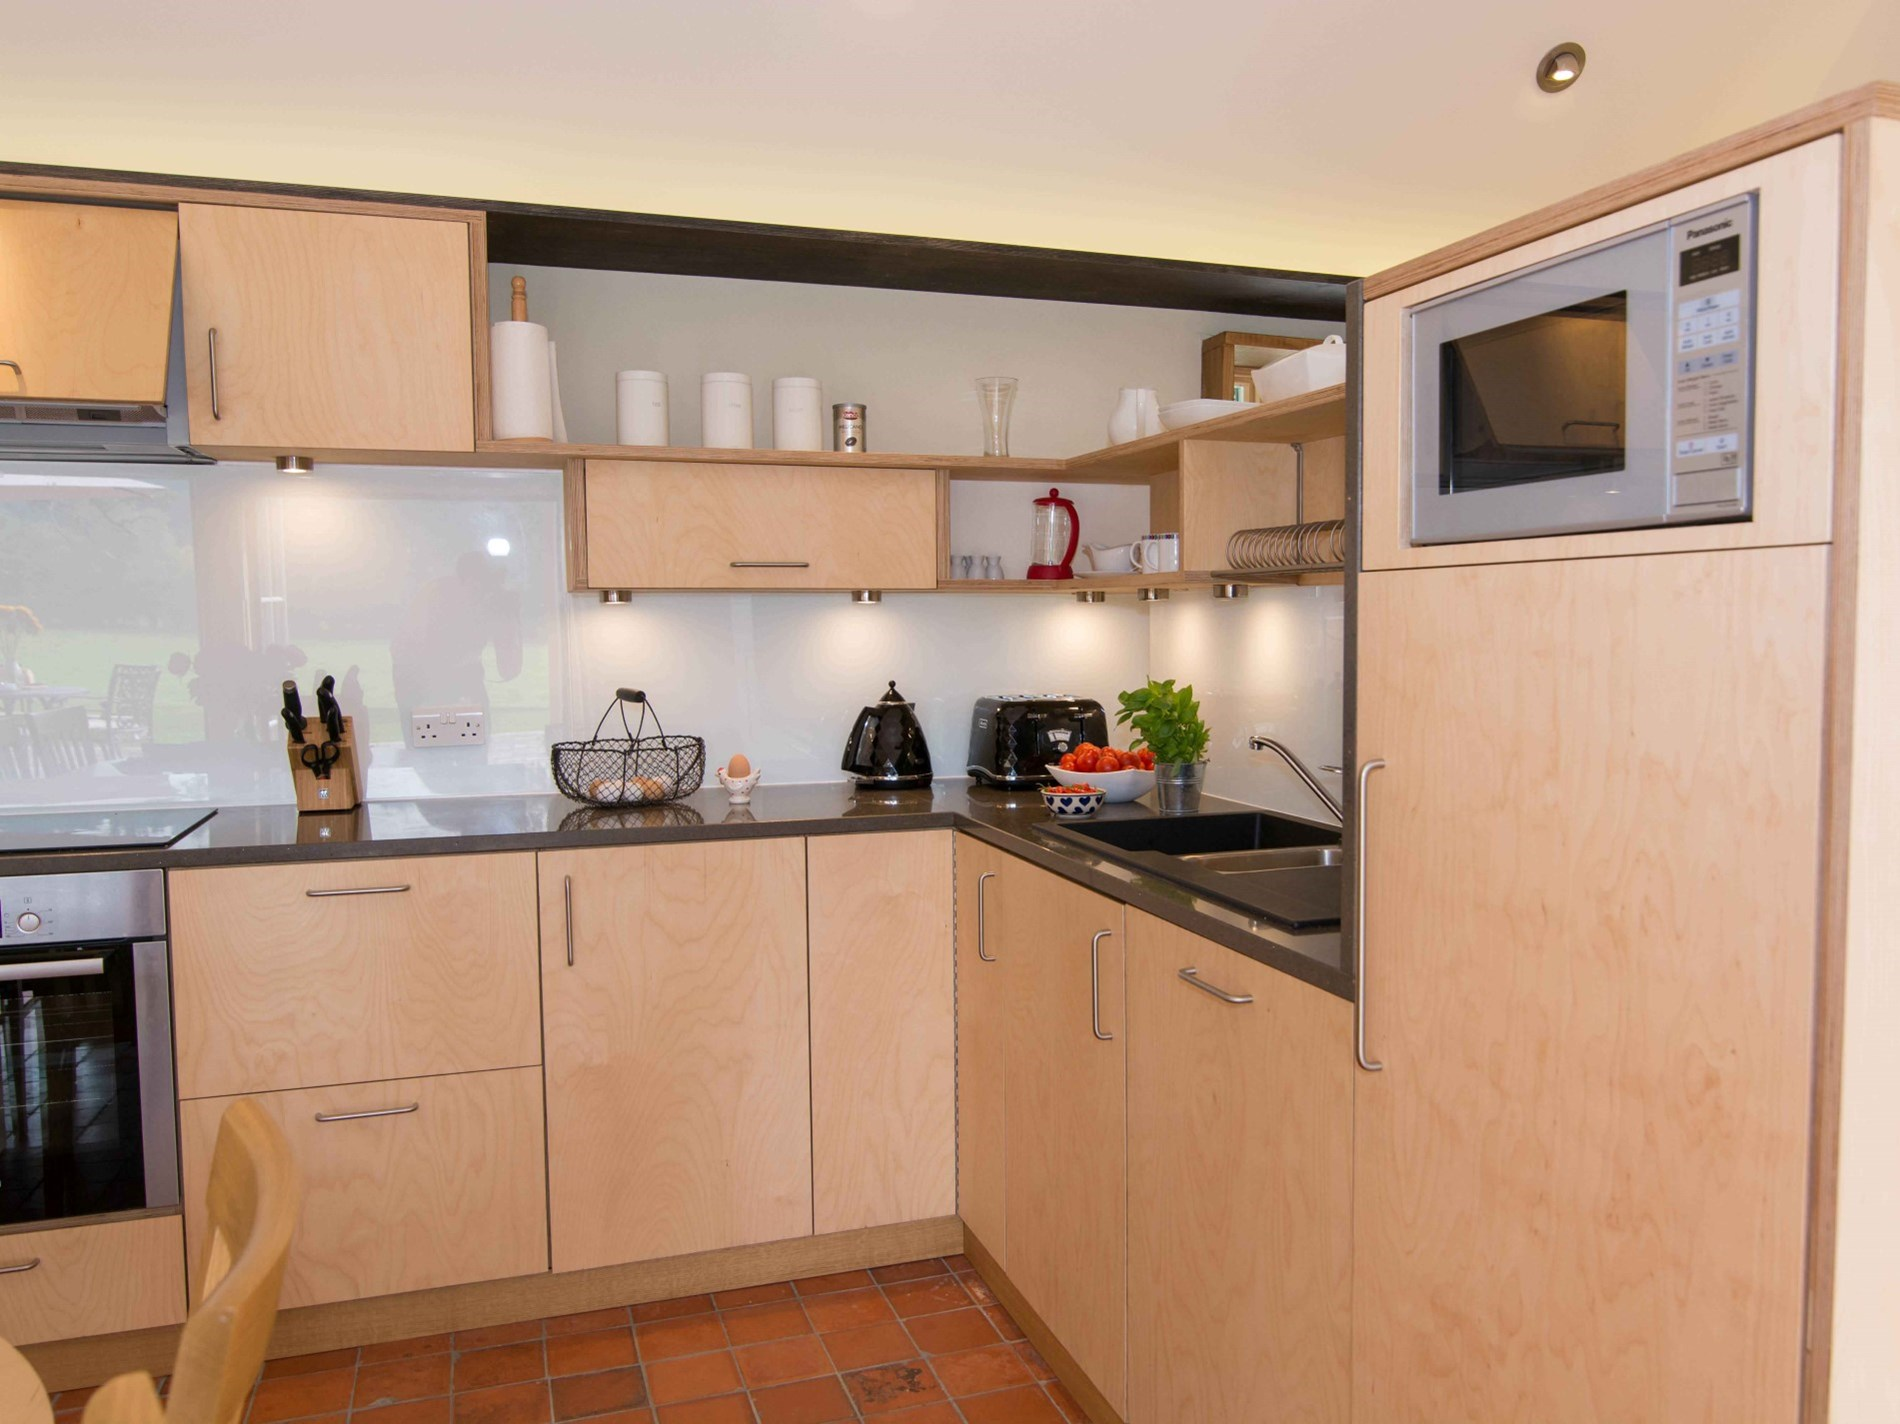 Everything to hand in the well equipped kitchen